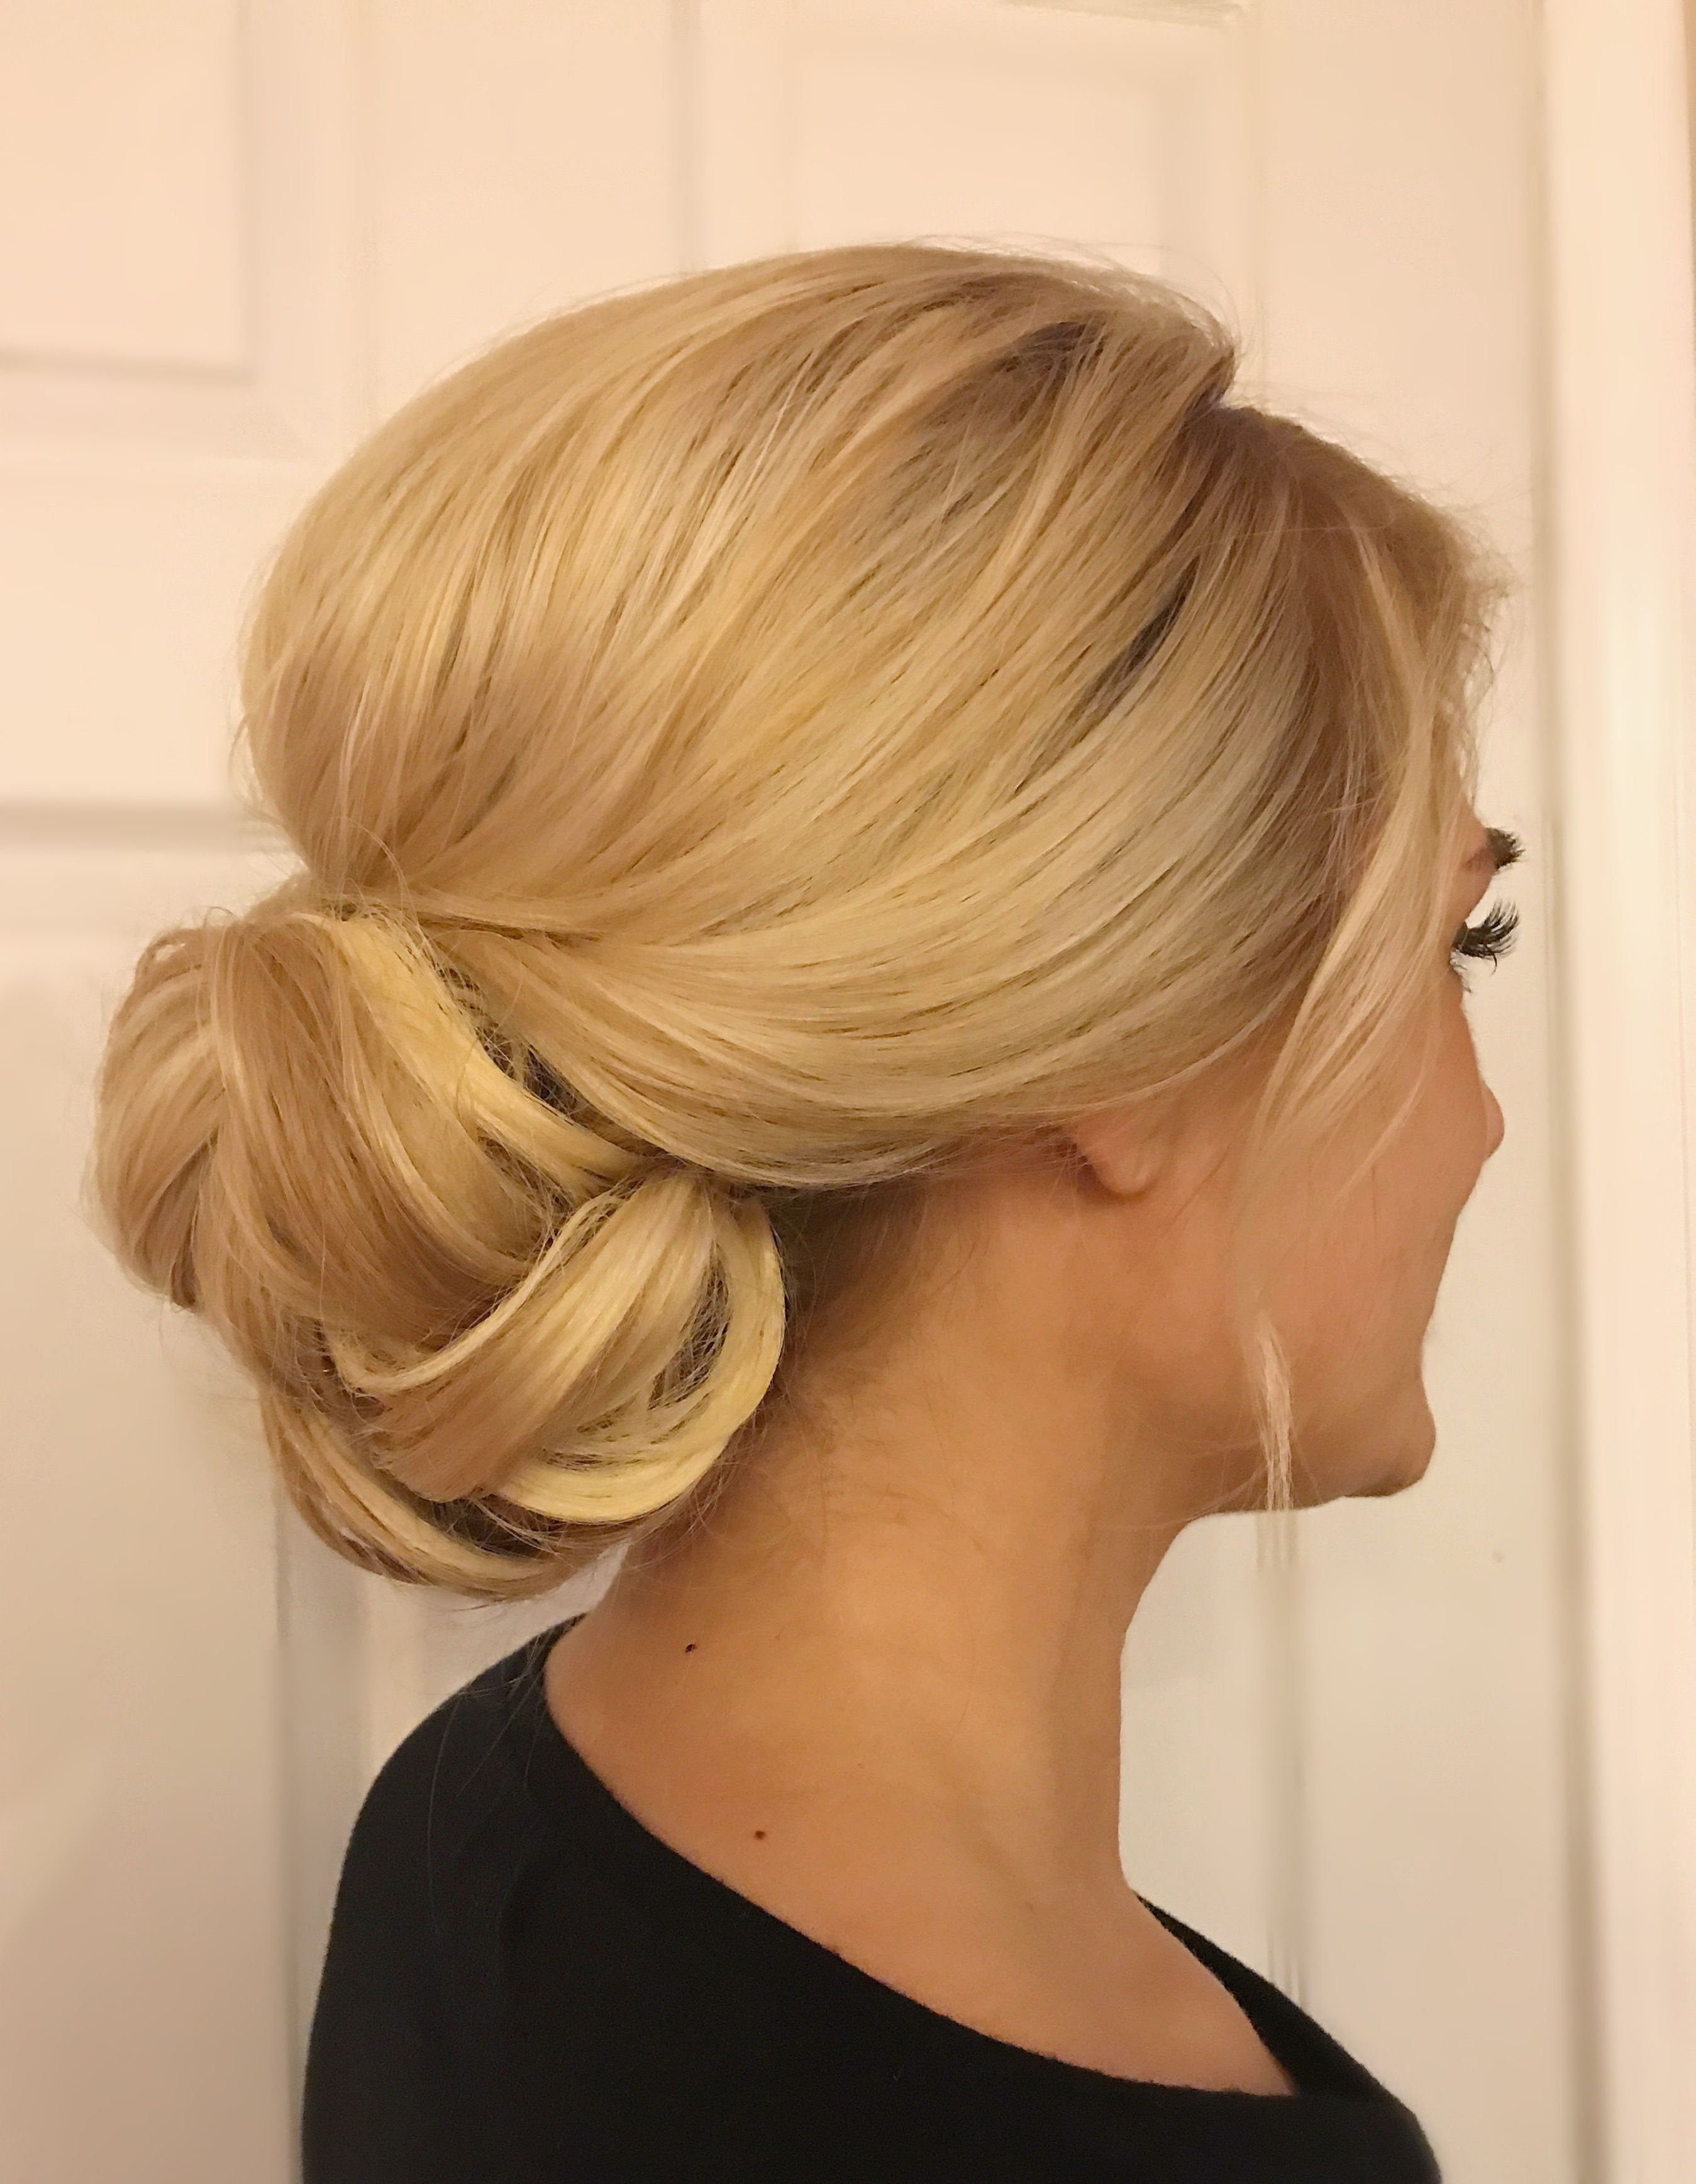 Widely Used Retro Wedding Hair Updos With Small Bouffant With Regard To Bridal Updo@shelbywhite_Hmu, Low Bun, Wedding Hair (Gallery 12 of 20)